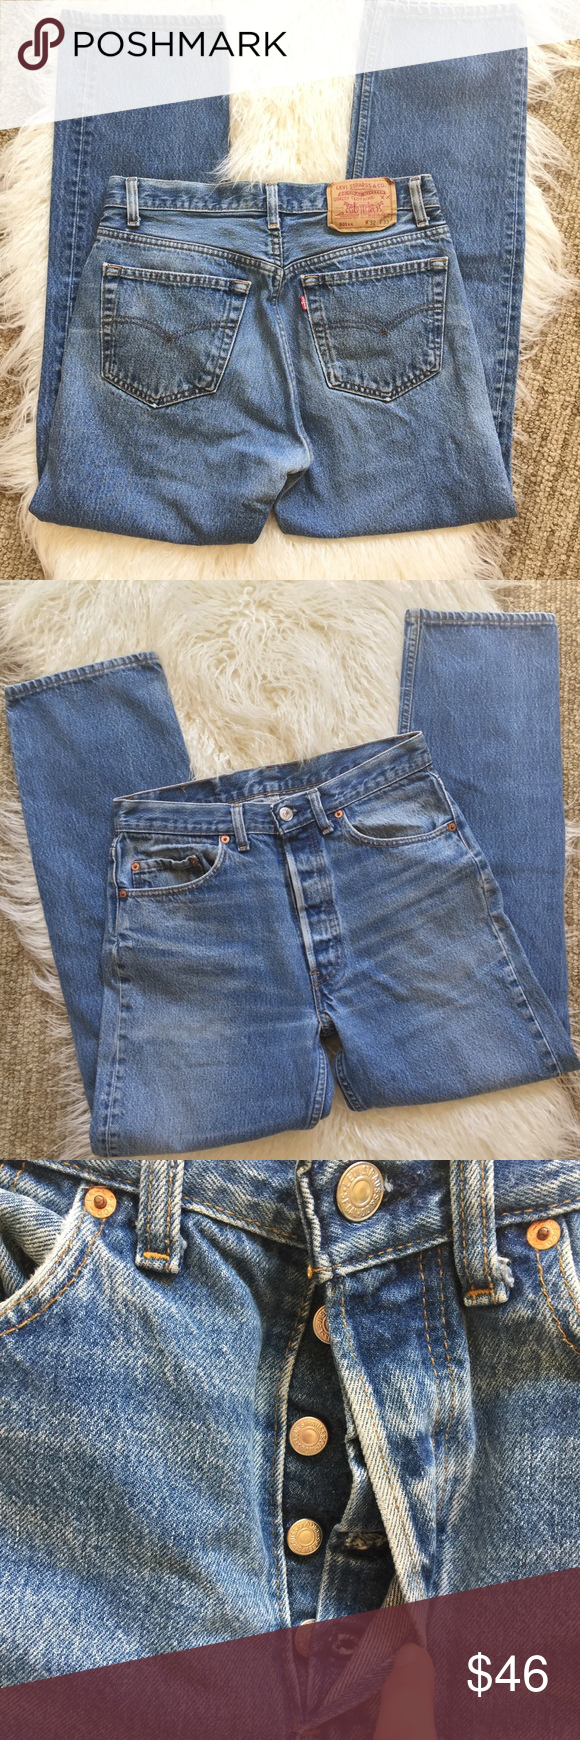 """Levi's 501 vintage button fly high waisted jeans Levi's light wash button fly jeans.  High waist, straight cut.  Levi's patch and label in the back.  Size 32 waist, 33"""" length.   My measurements 29"""" waist, 38"""" length, 29"""" inseam, 11"""" front rise, 34"""" hips, 7"""" leg opening. Good used condition. Small amount of wear in the crotch and bottom of legs Levi's Jeans Boot Cut"""